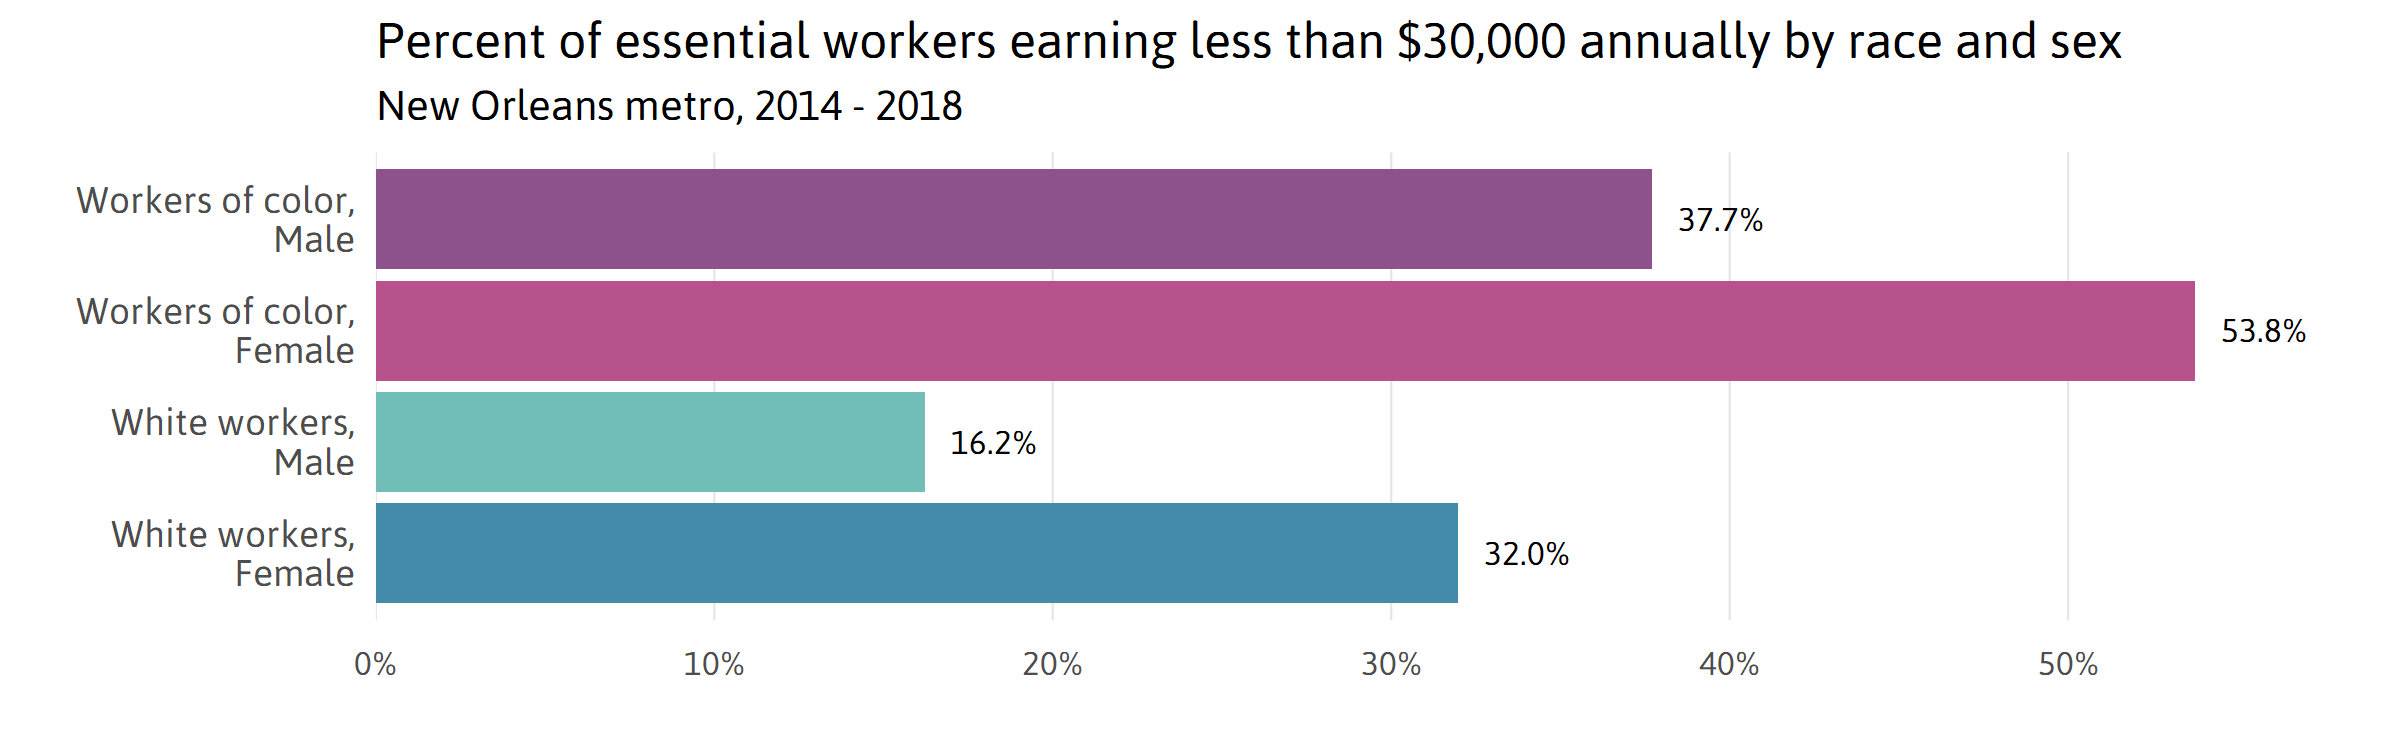 Percent essential workers earning less than $30,000 by race, sex